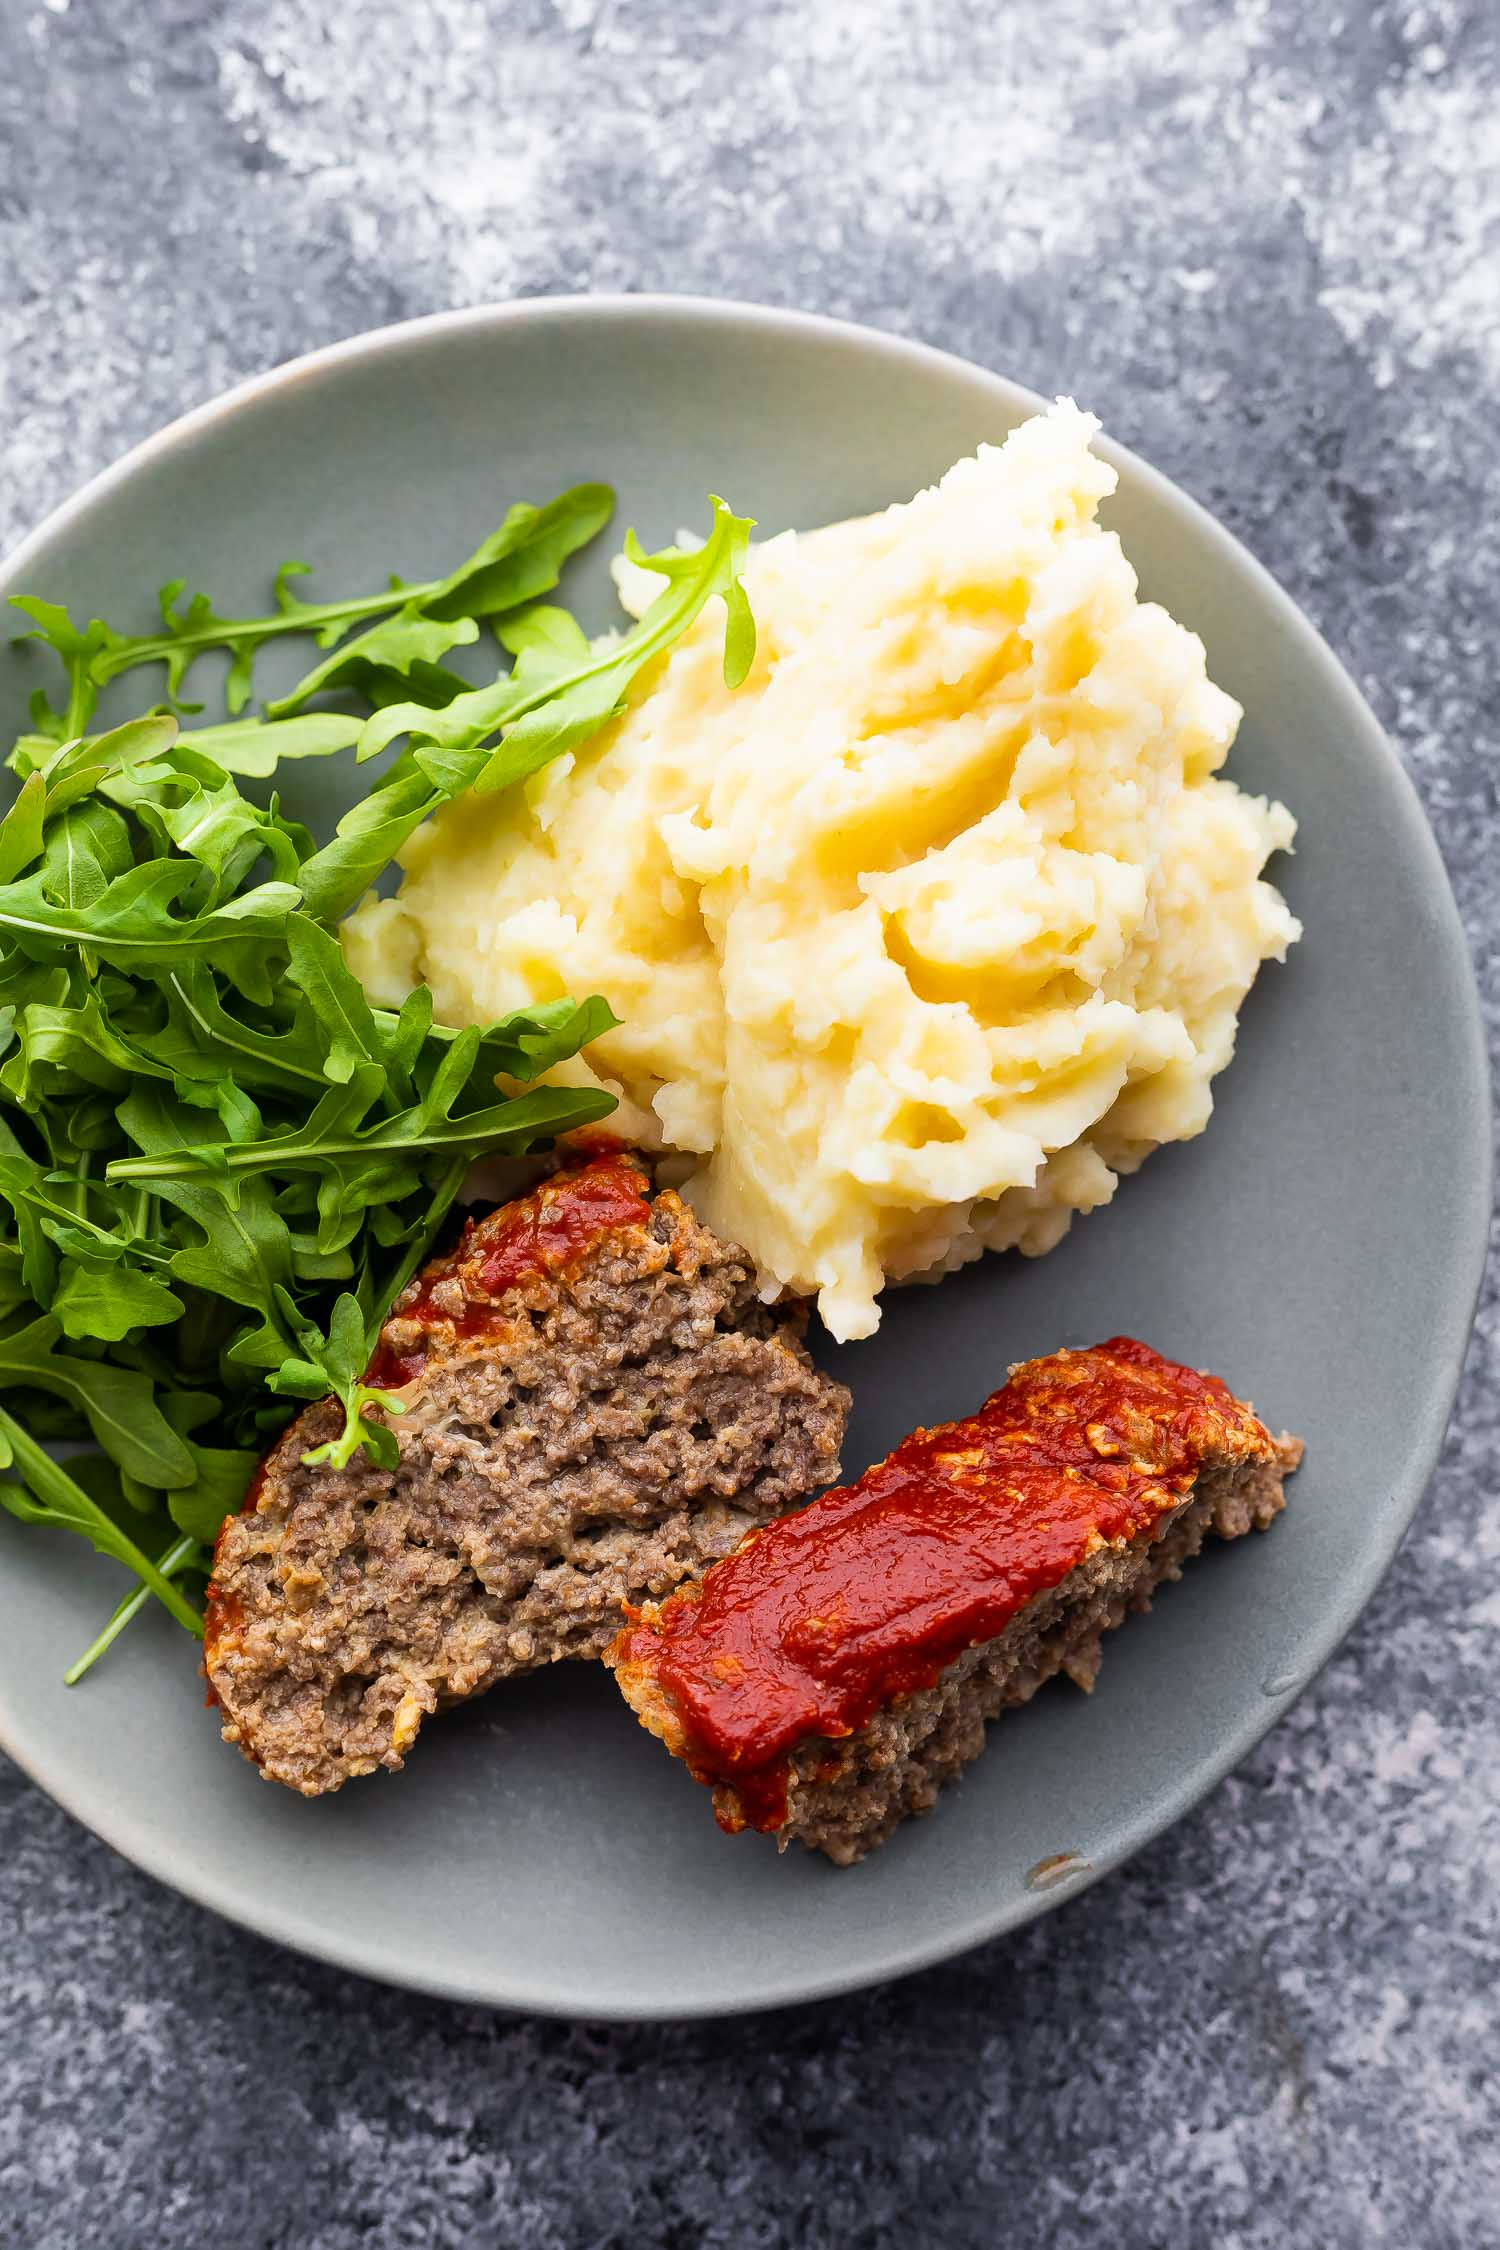 plate with two slices of meatloaf, arugula, and mashed potatoes- close up shot